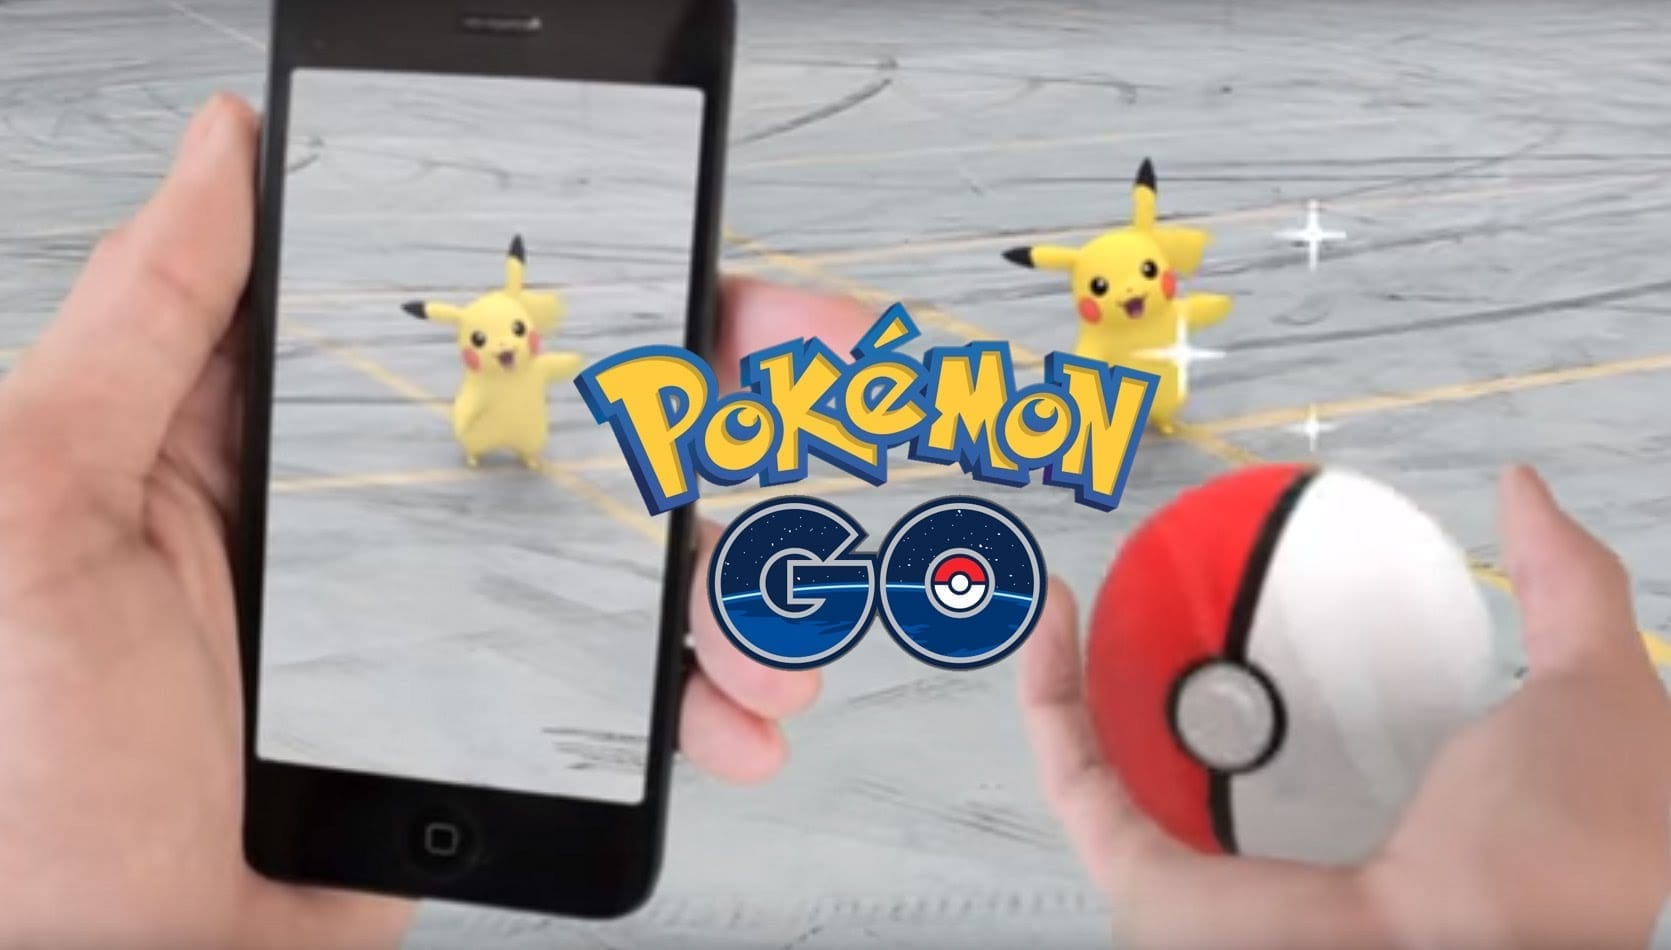 Gaming: Pokémon Go – is it really as great as it seems?